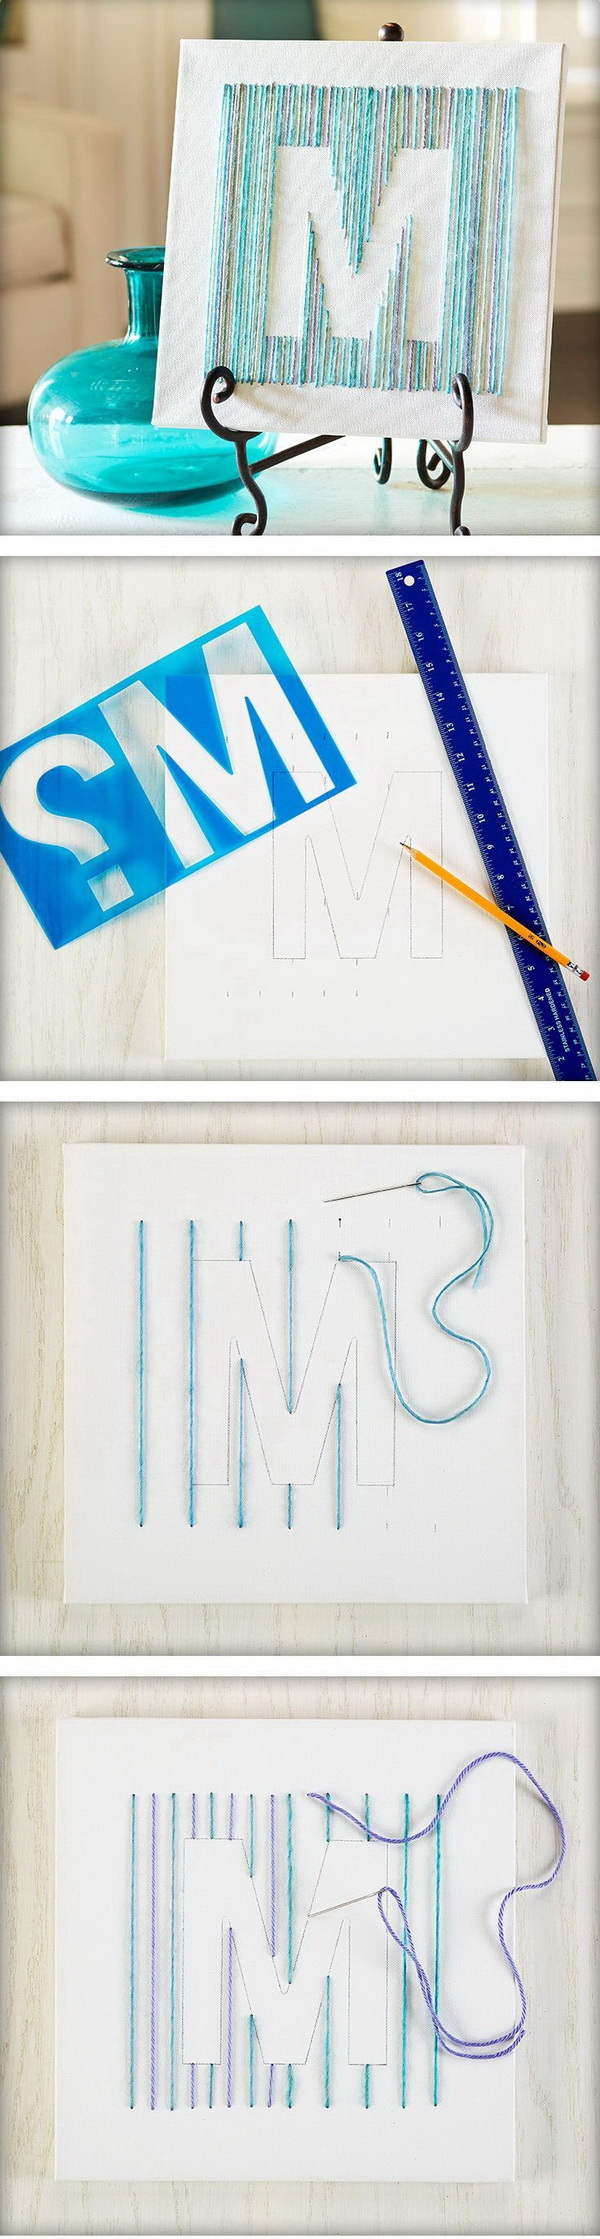 Yarn Letter Canvas. Outline the letters you like in a board and thread the needle with yarn. Super easy to make in an hour and turns out to be such a great DIY for your decor!